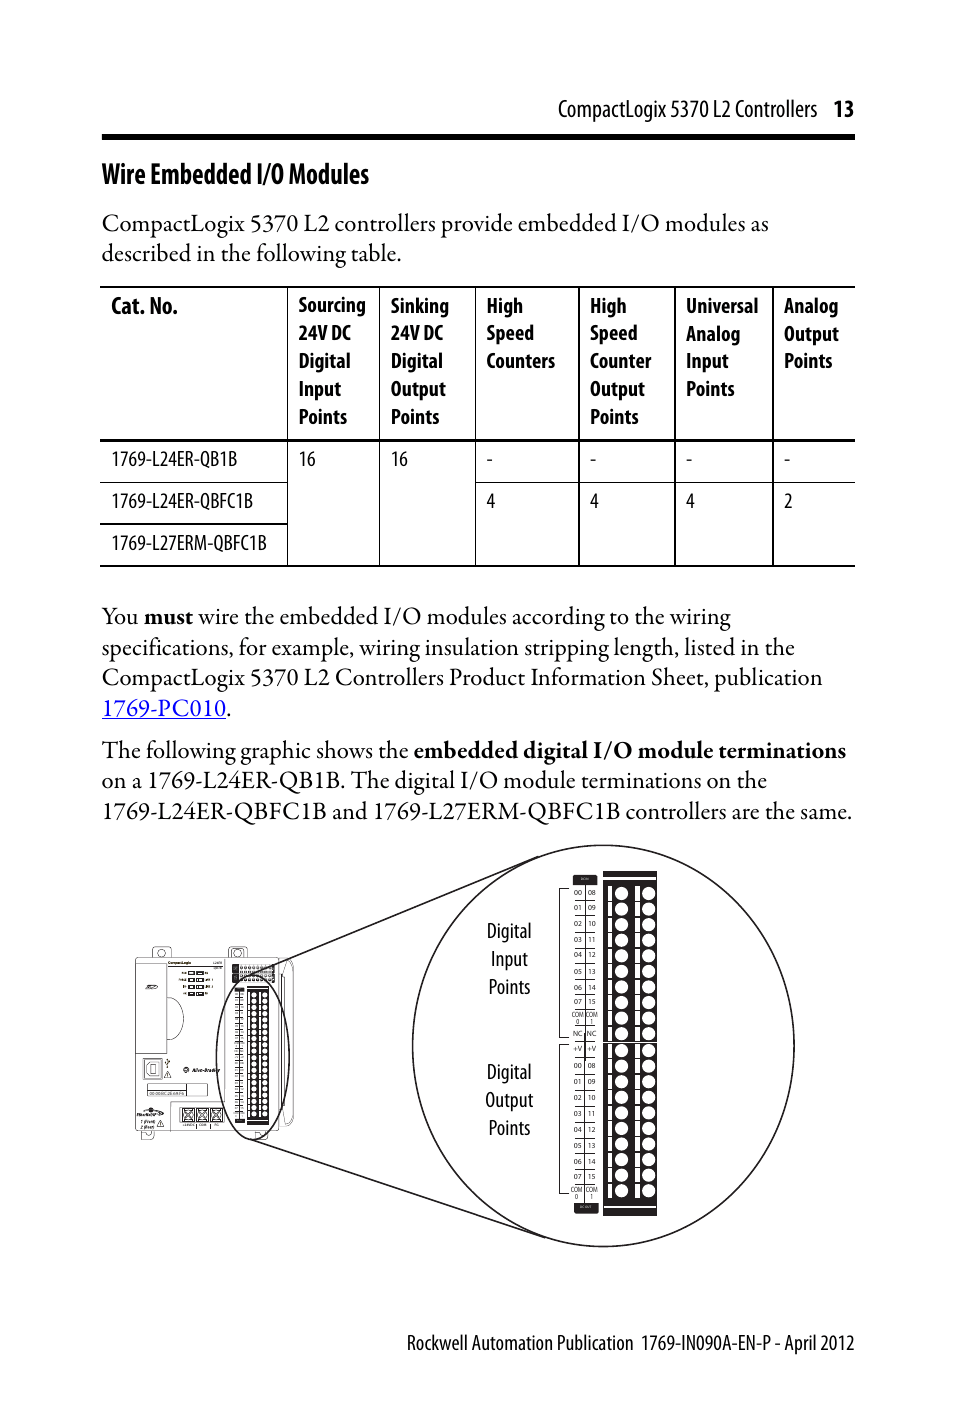 cat wiring diagram 2002 dodge ram 1500 wire embedded i/o modules, digital input points output points, dc 24vdc sink ...